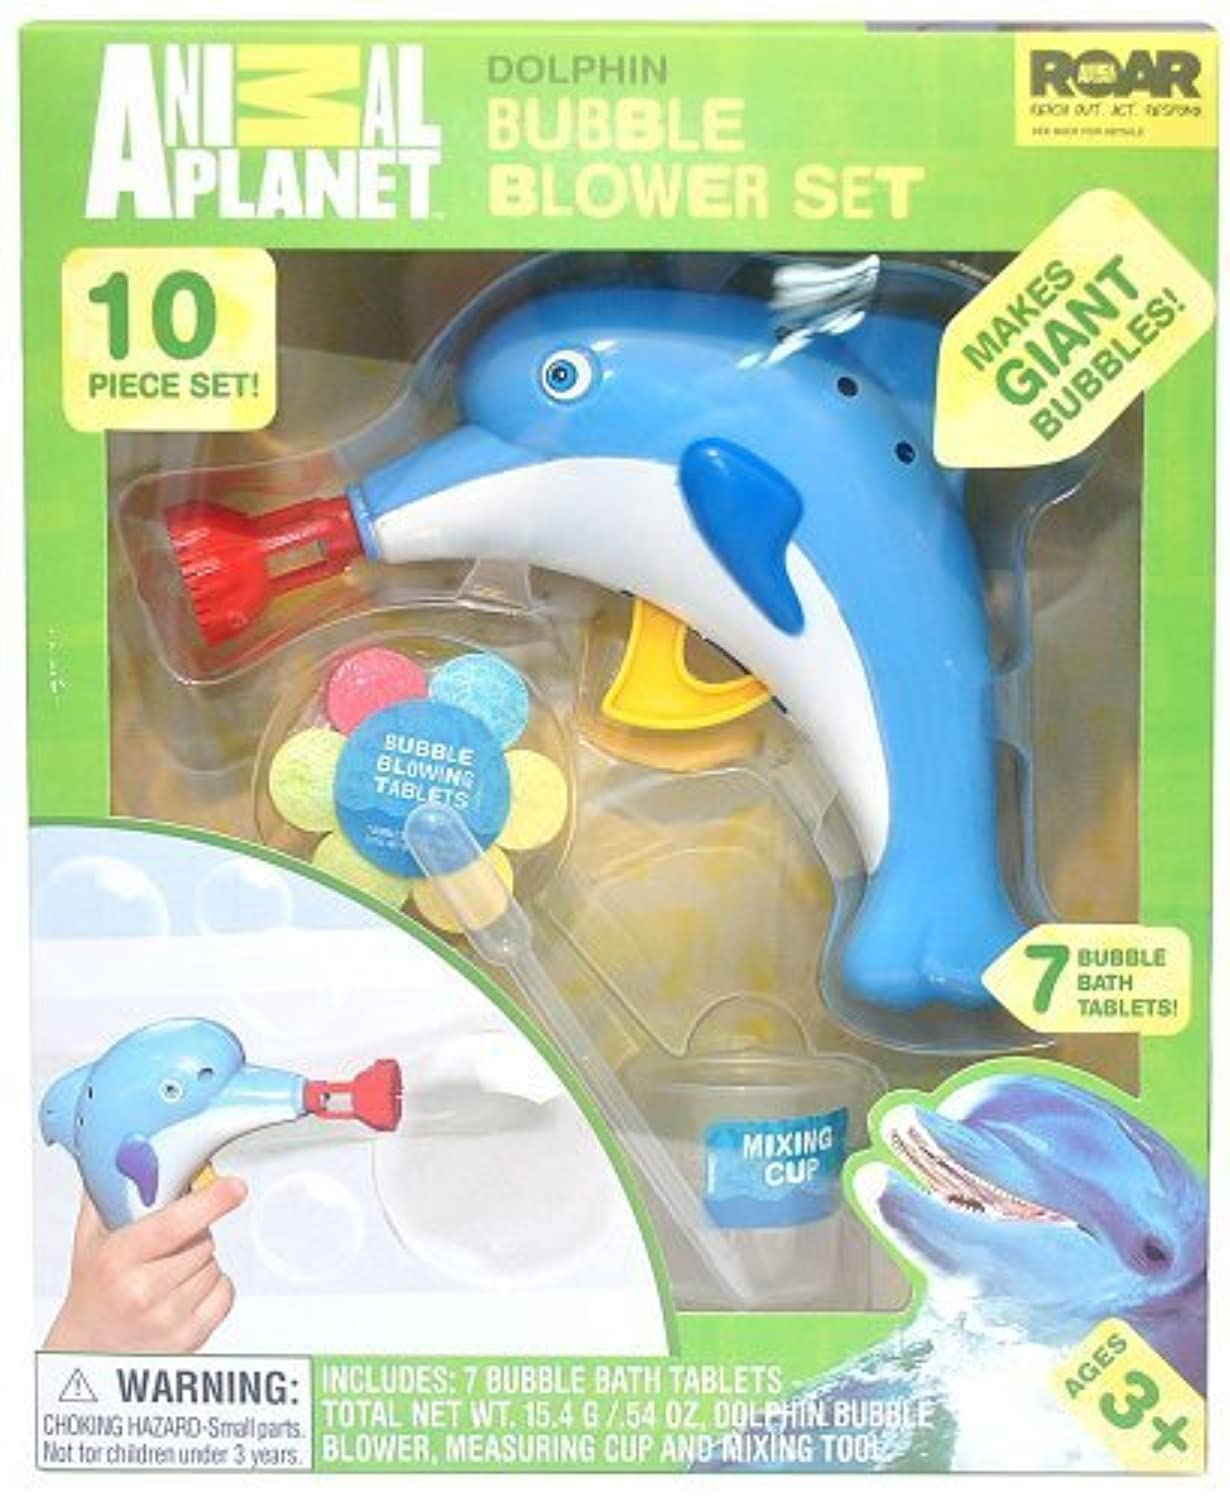 Animal Planet Bubble Blower Set, Dolphin by Animal Planet [並行輸入品]